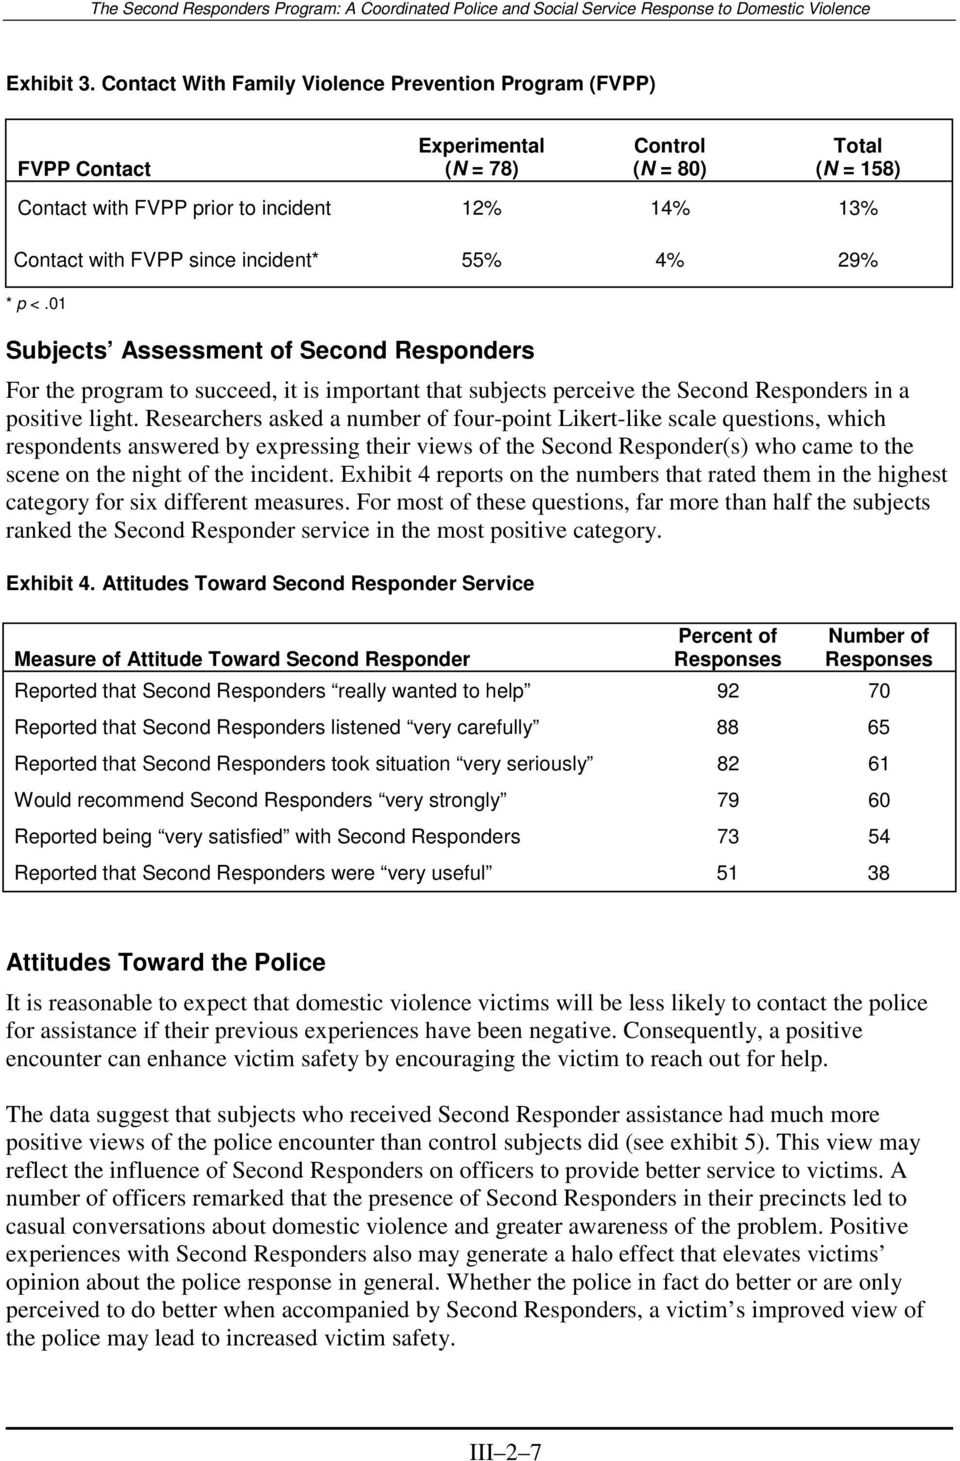 incident* 55% 4% 29% * p <.01 Subjects Assessment of Second Responders For the program to succeed, it is important that subjects perceive the Second Responders in a positive light.